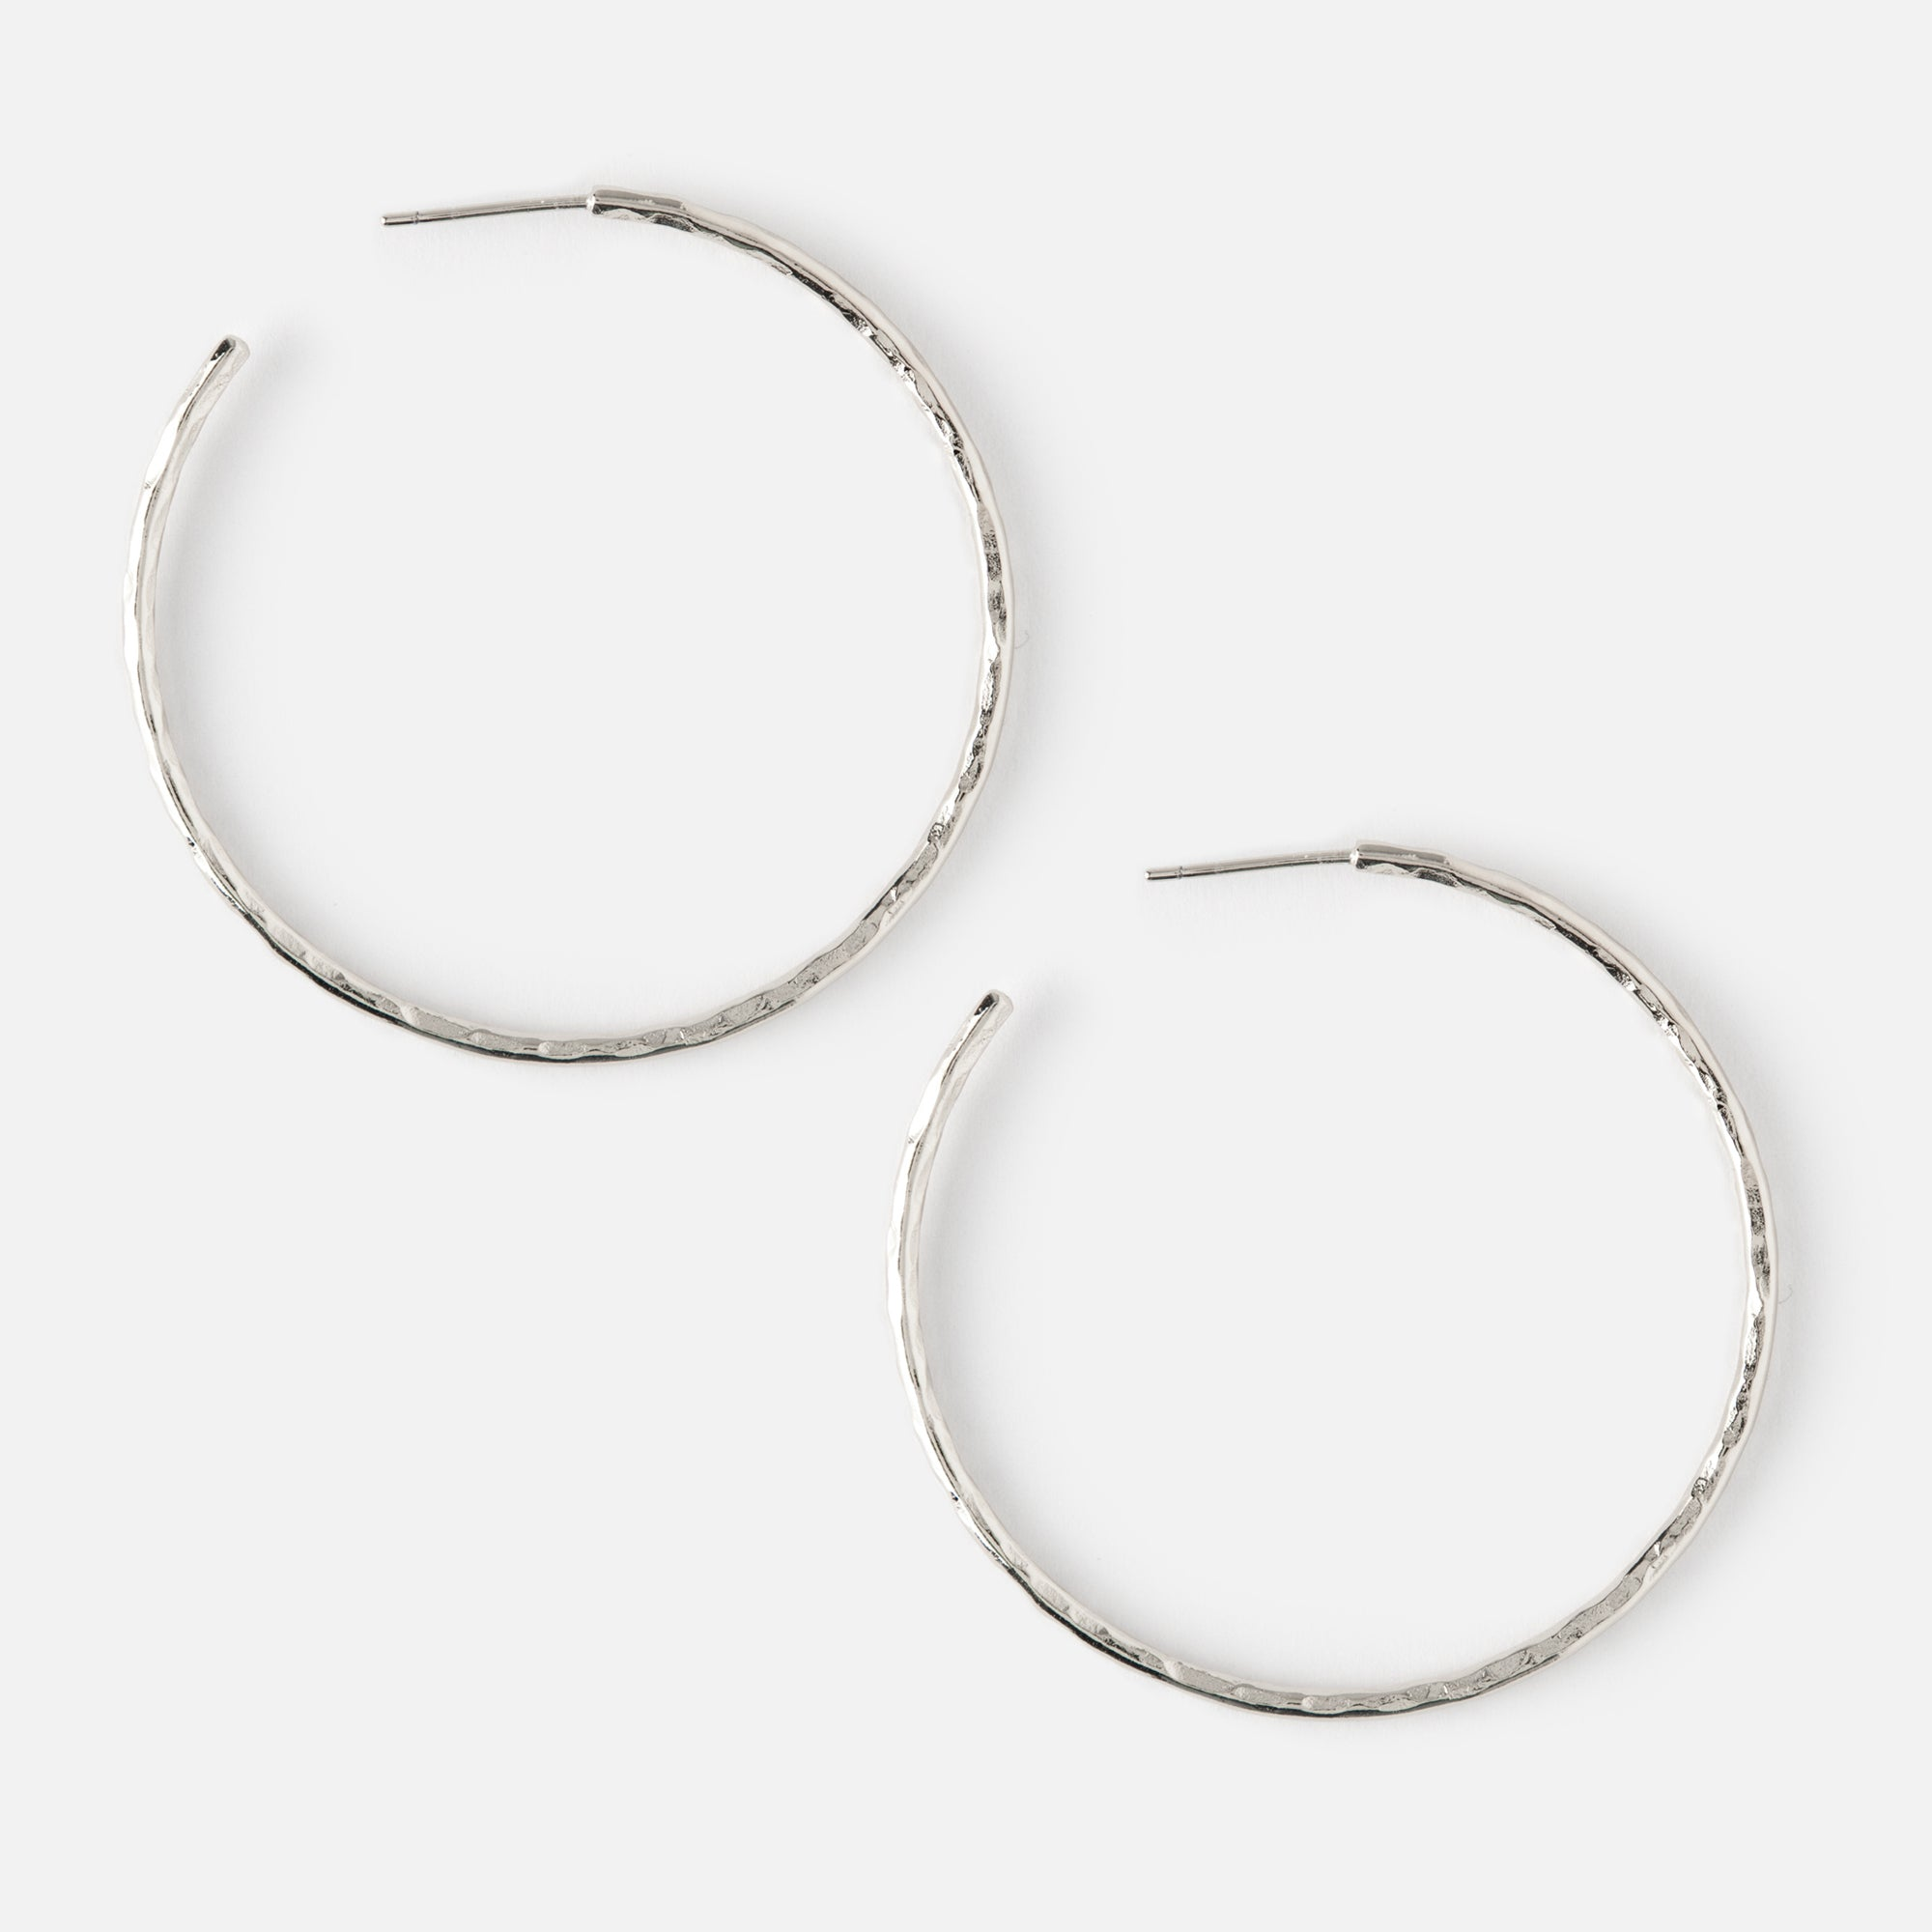 Hammered Hoop Earrings - Silver